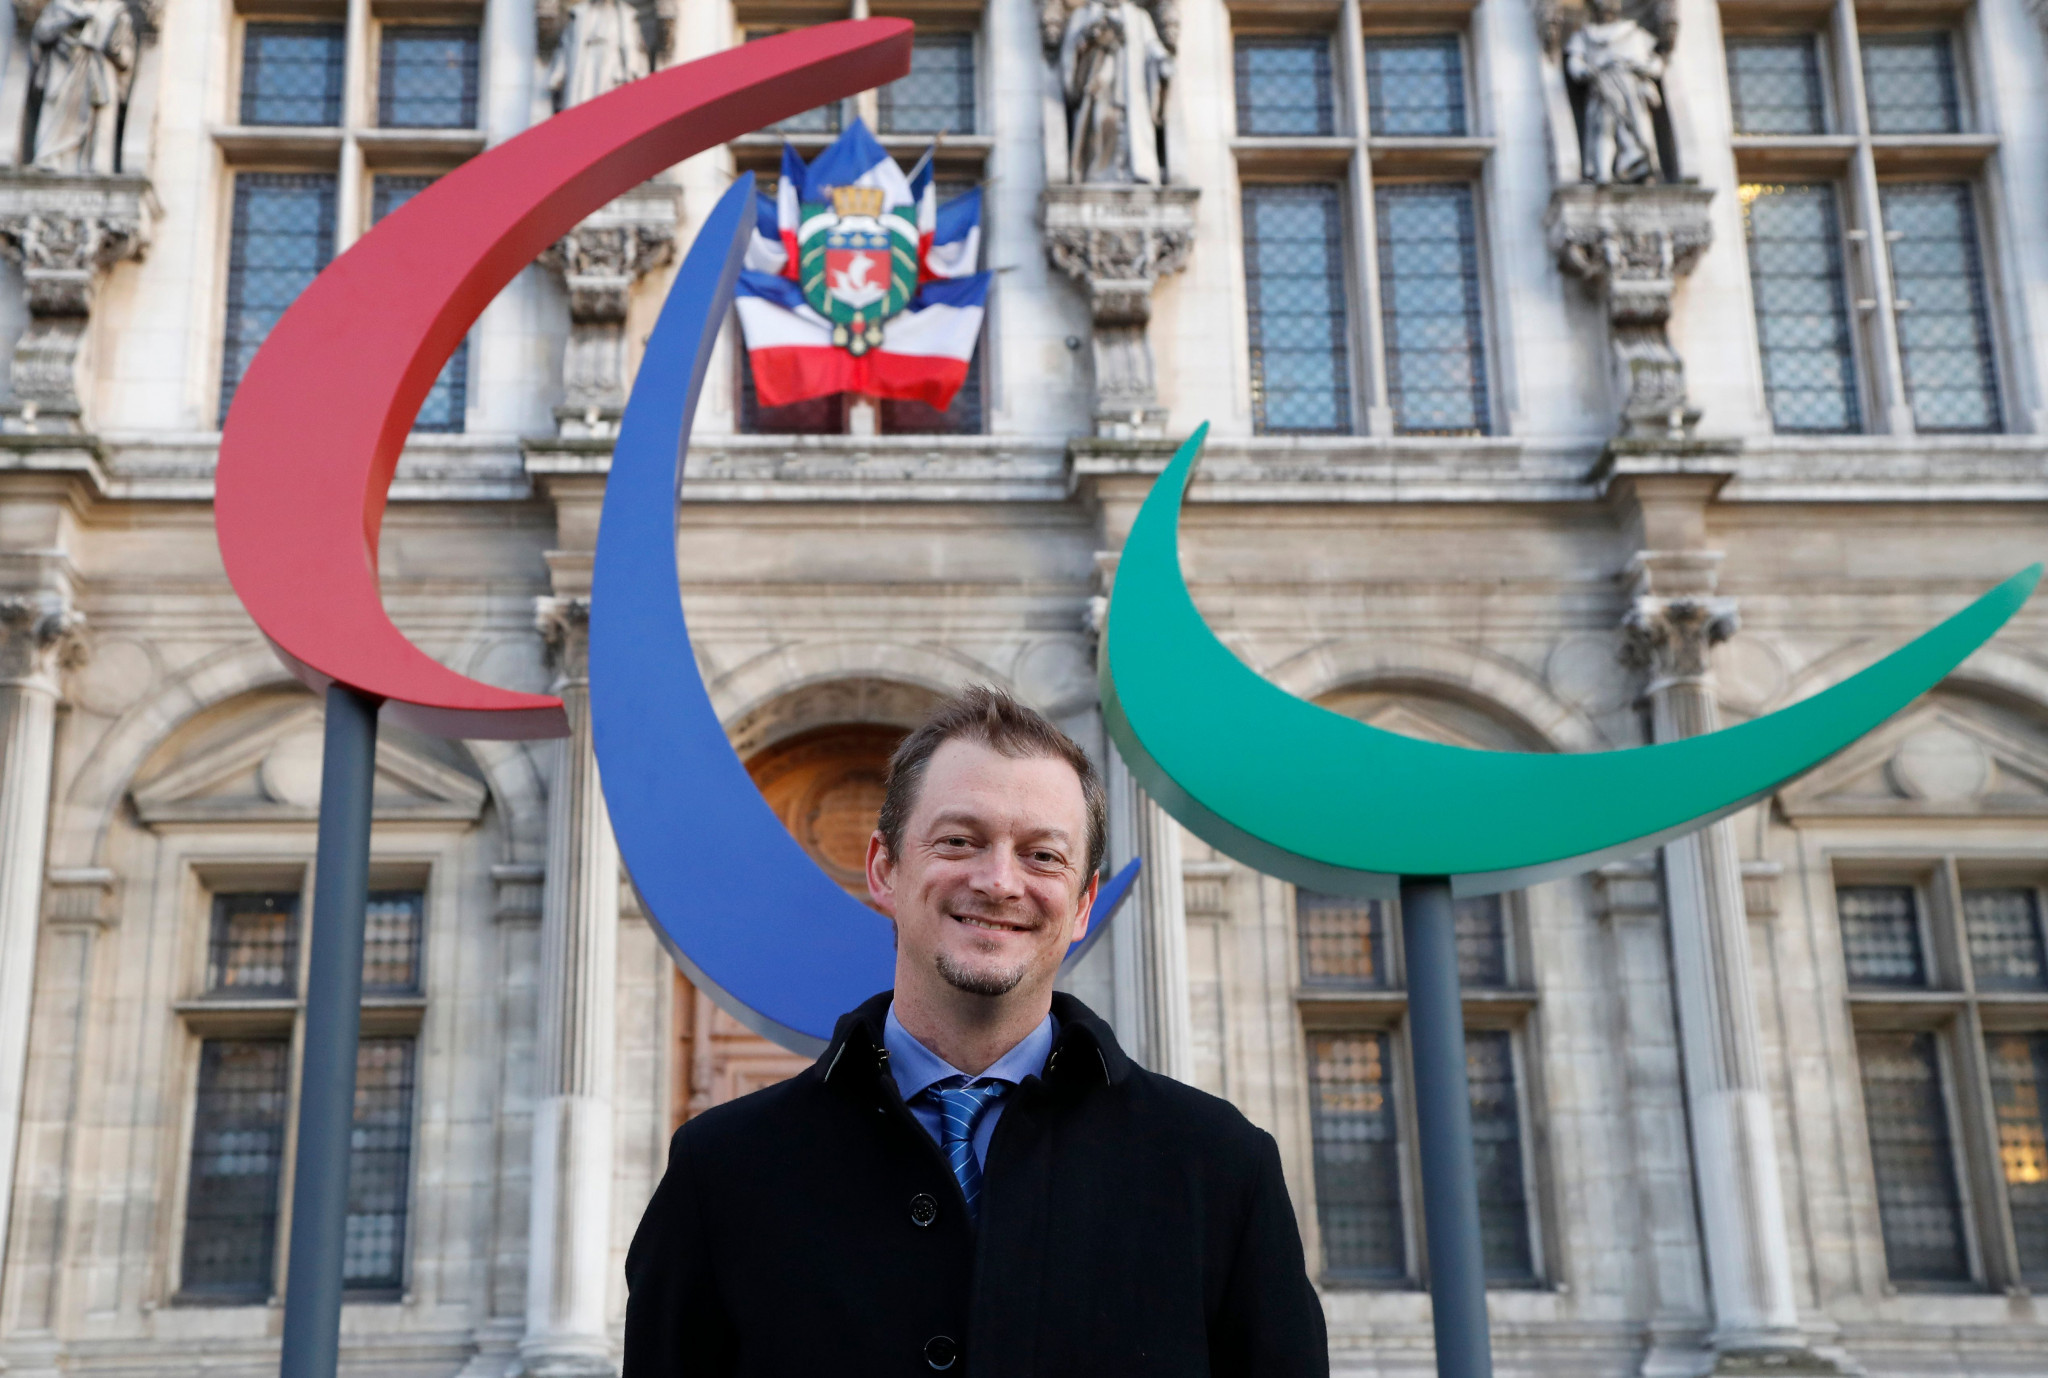 Paris 2024 Paralympics sport programme to be announced in early 2019